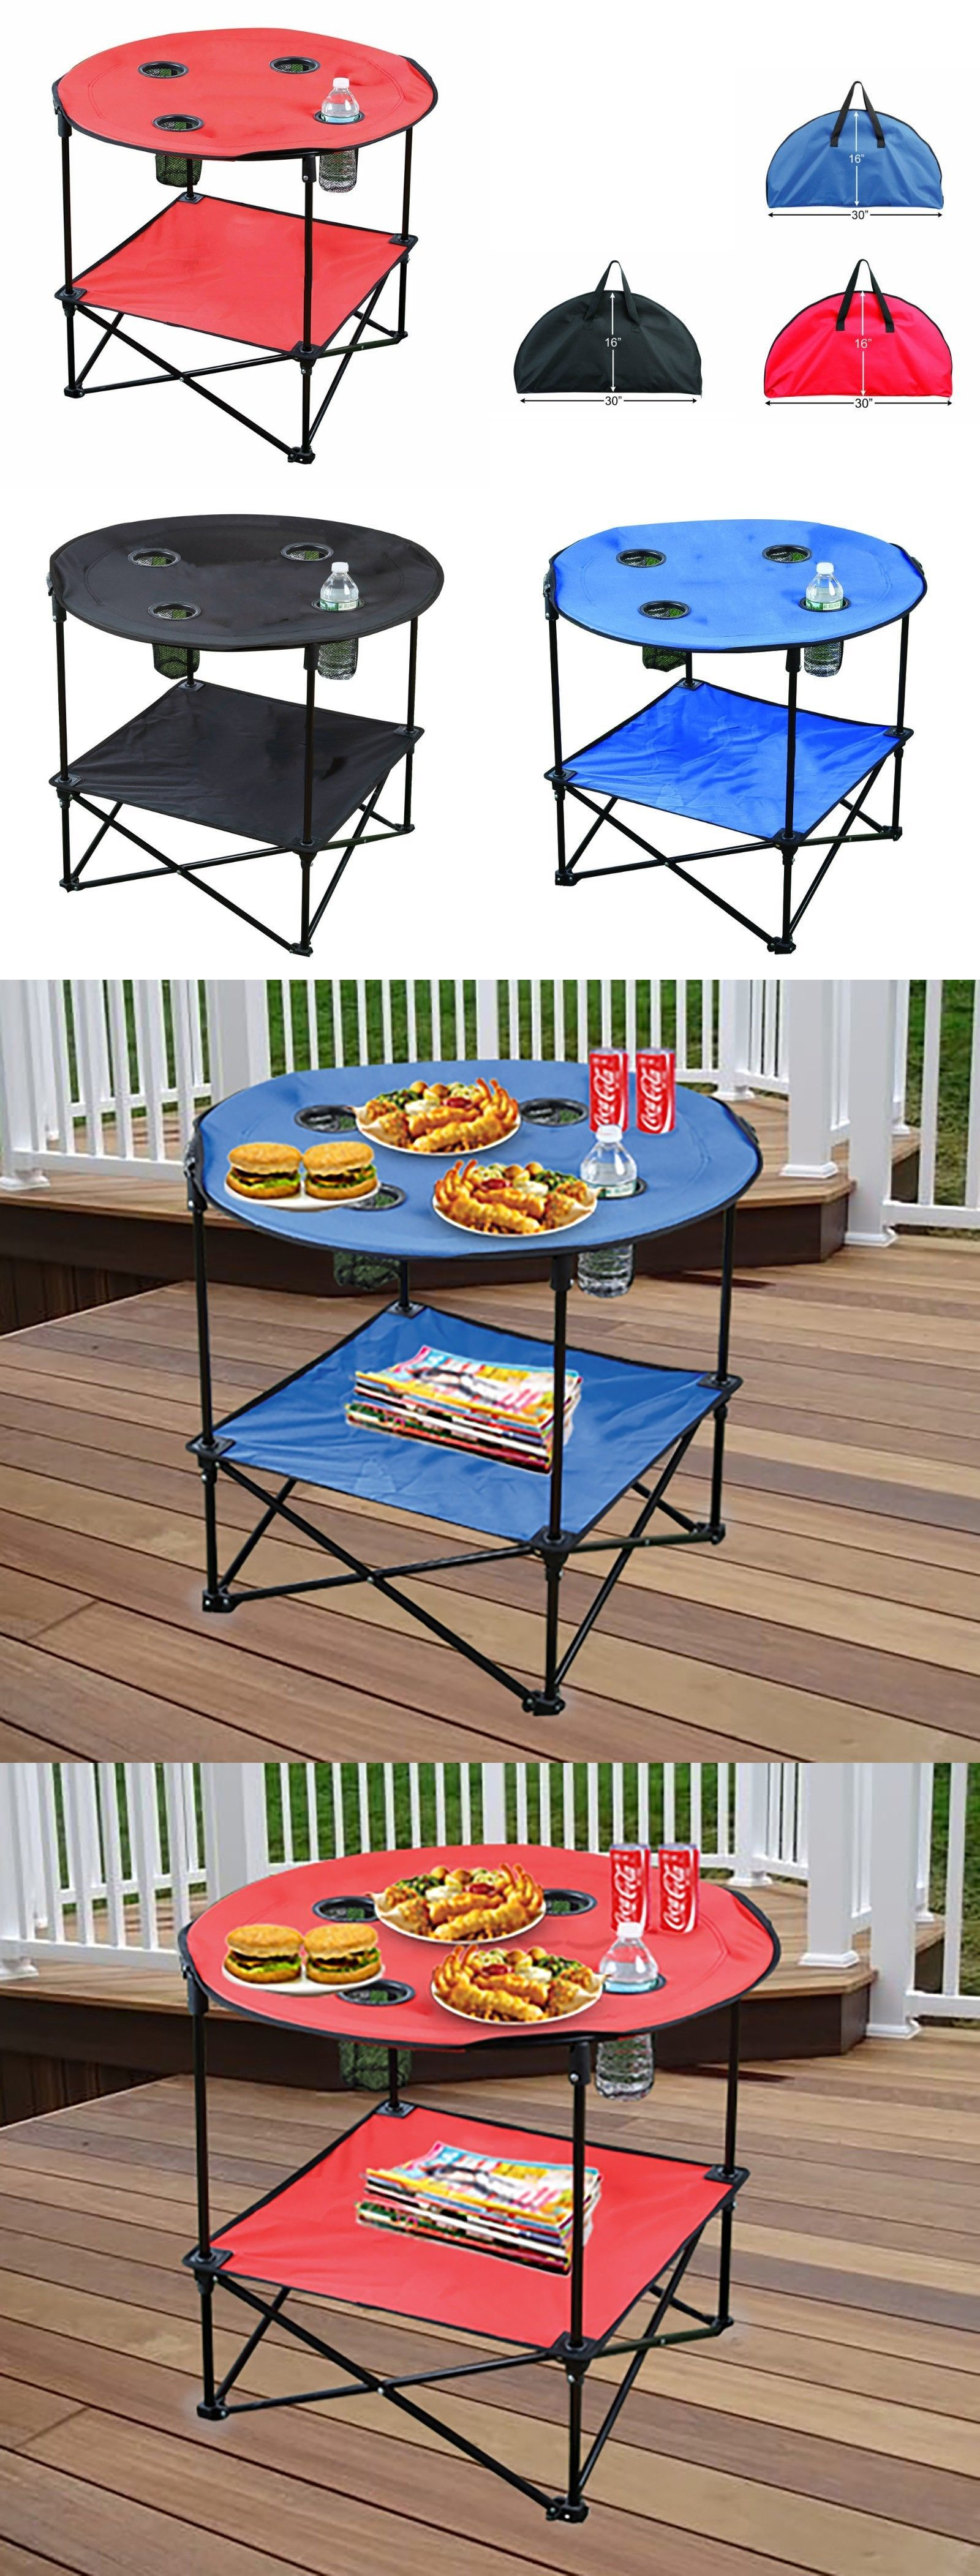 camping furniture portable side table folding nic outdoor for bbq travel patio case now only barn door kitchen cabinets drop leaf dinette sets couch legs weathered top decorations